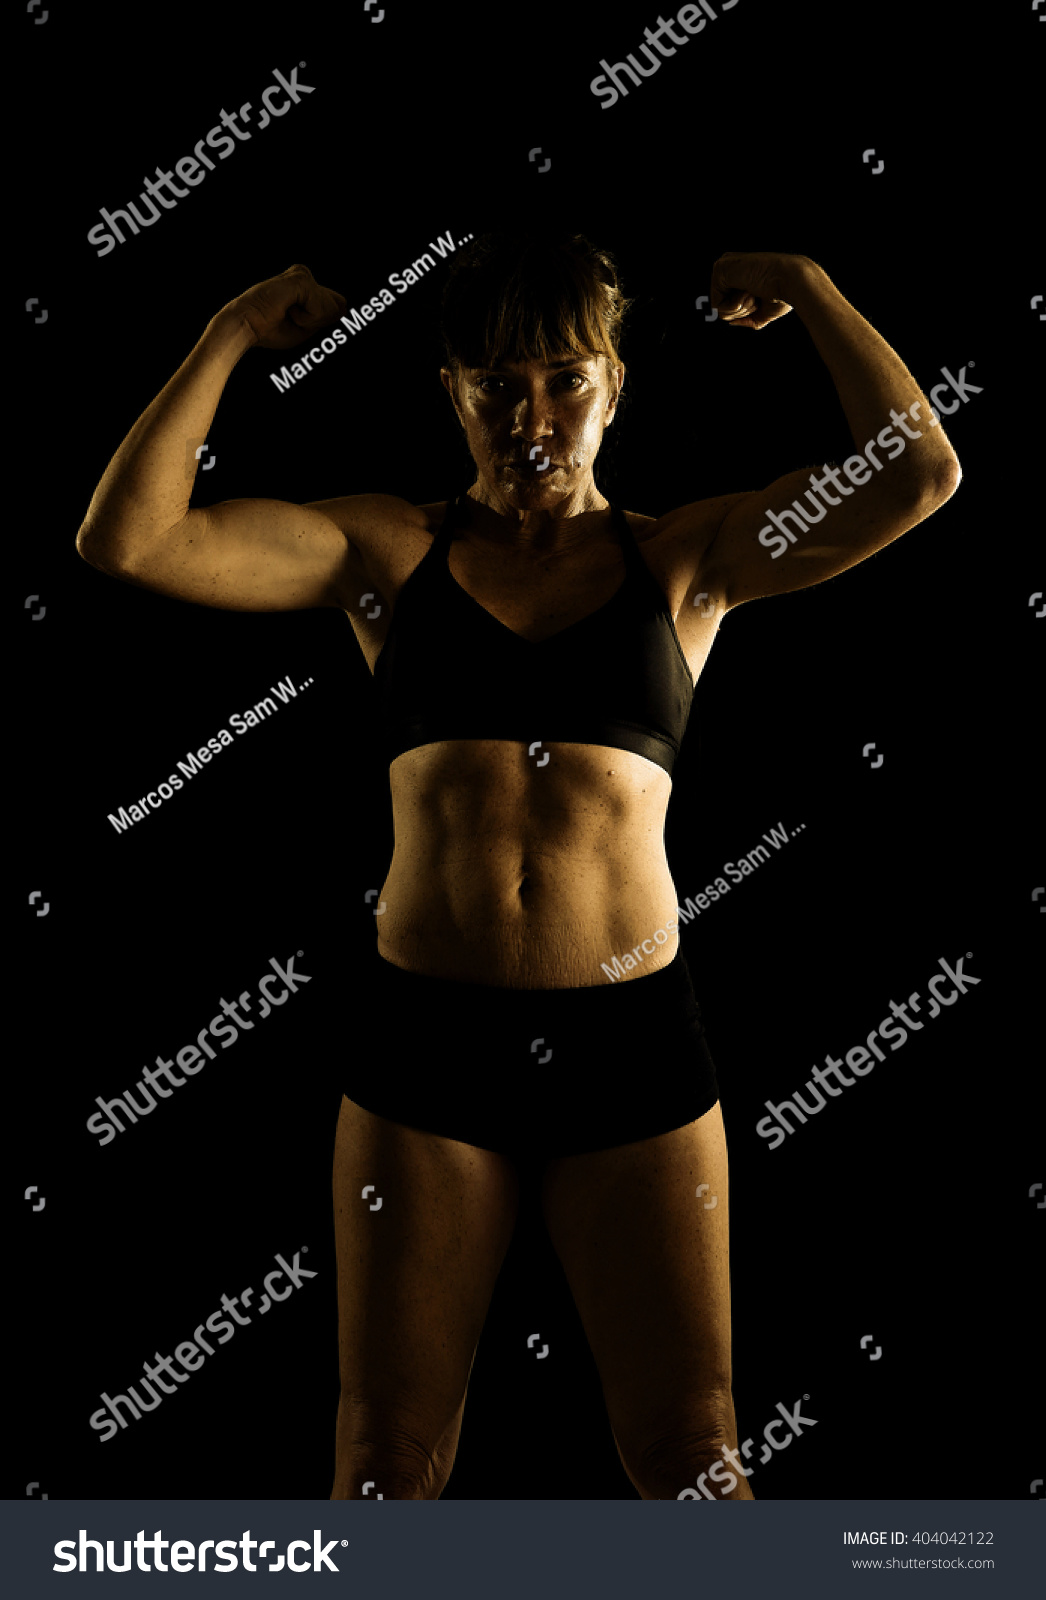 """womens bodies in sports ads essay Why aren't women's sports as big as men's dr_ads takes that notion of equality to a radical end: """"bodies in urban spaces"""" in vilnius."""